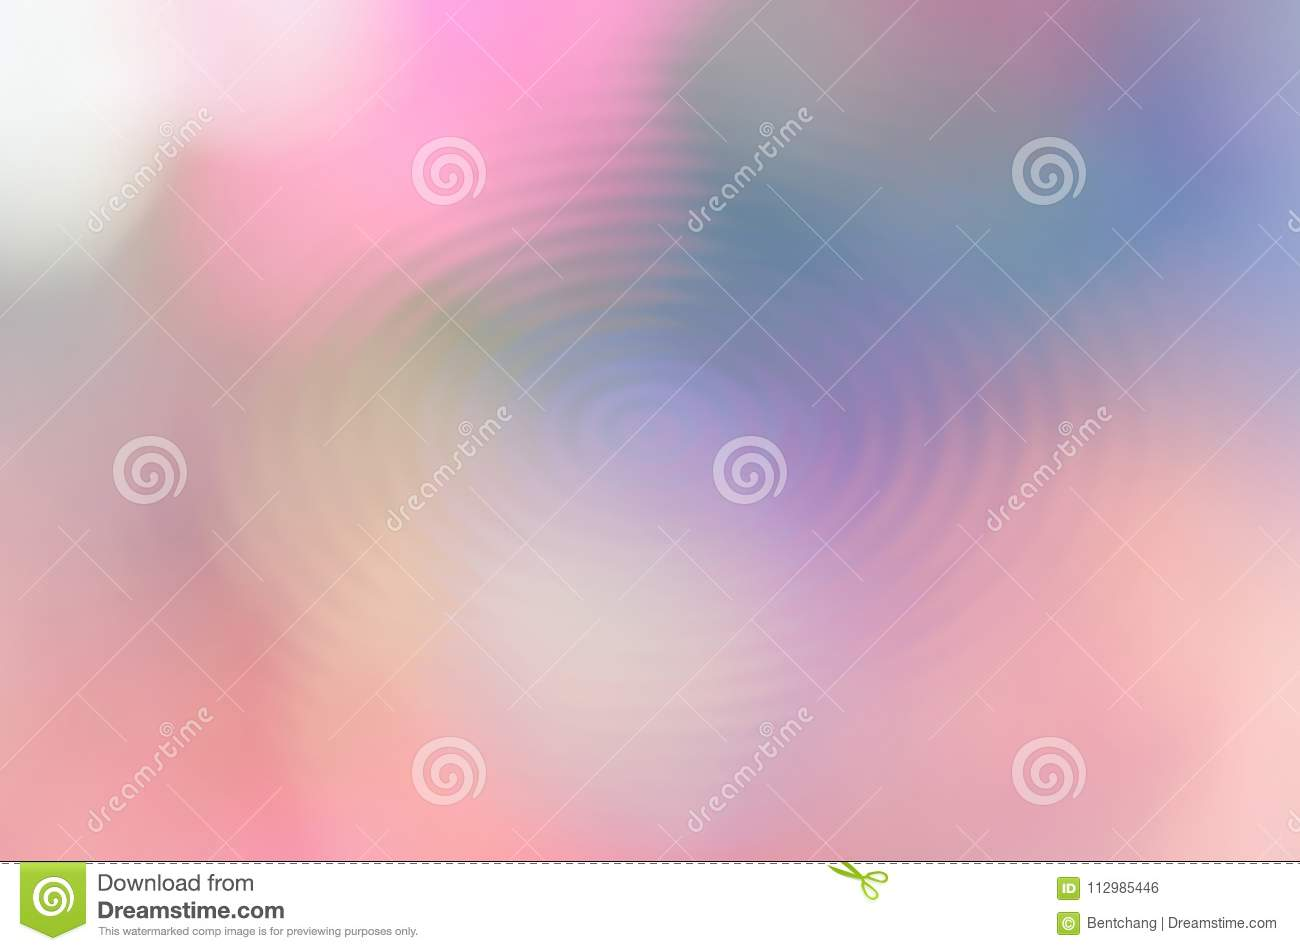 Motion illustrations background abstract, blur texture. Nature, bubble, beauty & design.